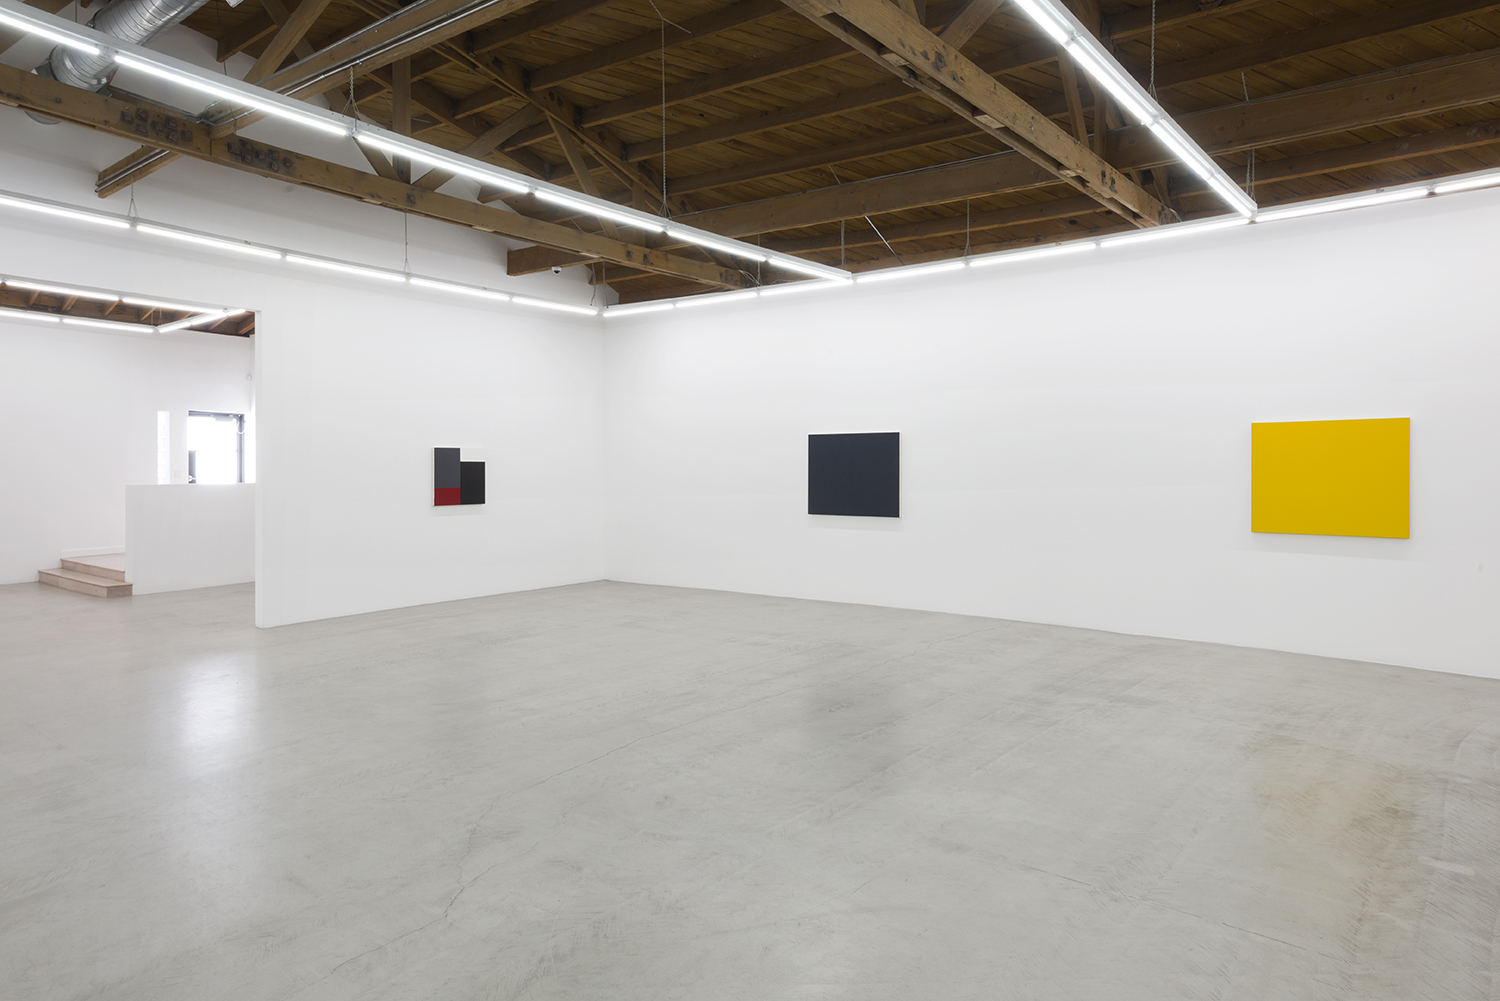 Installation of three of Edith Baumann's paintings, the early grid piece, and the grey and yellow monochrome paintings